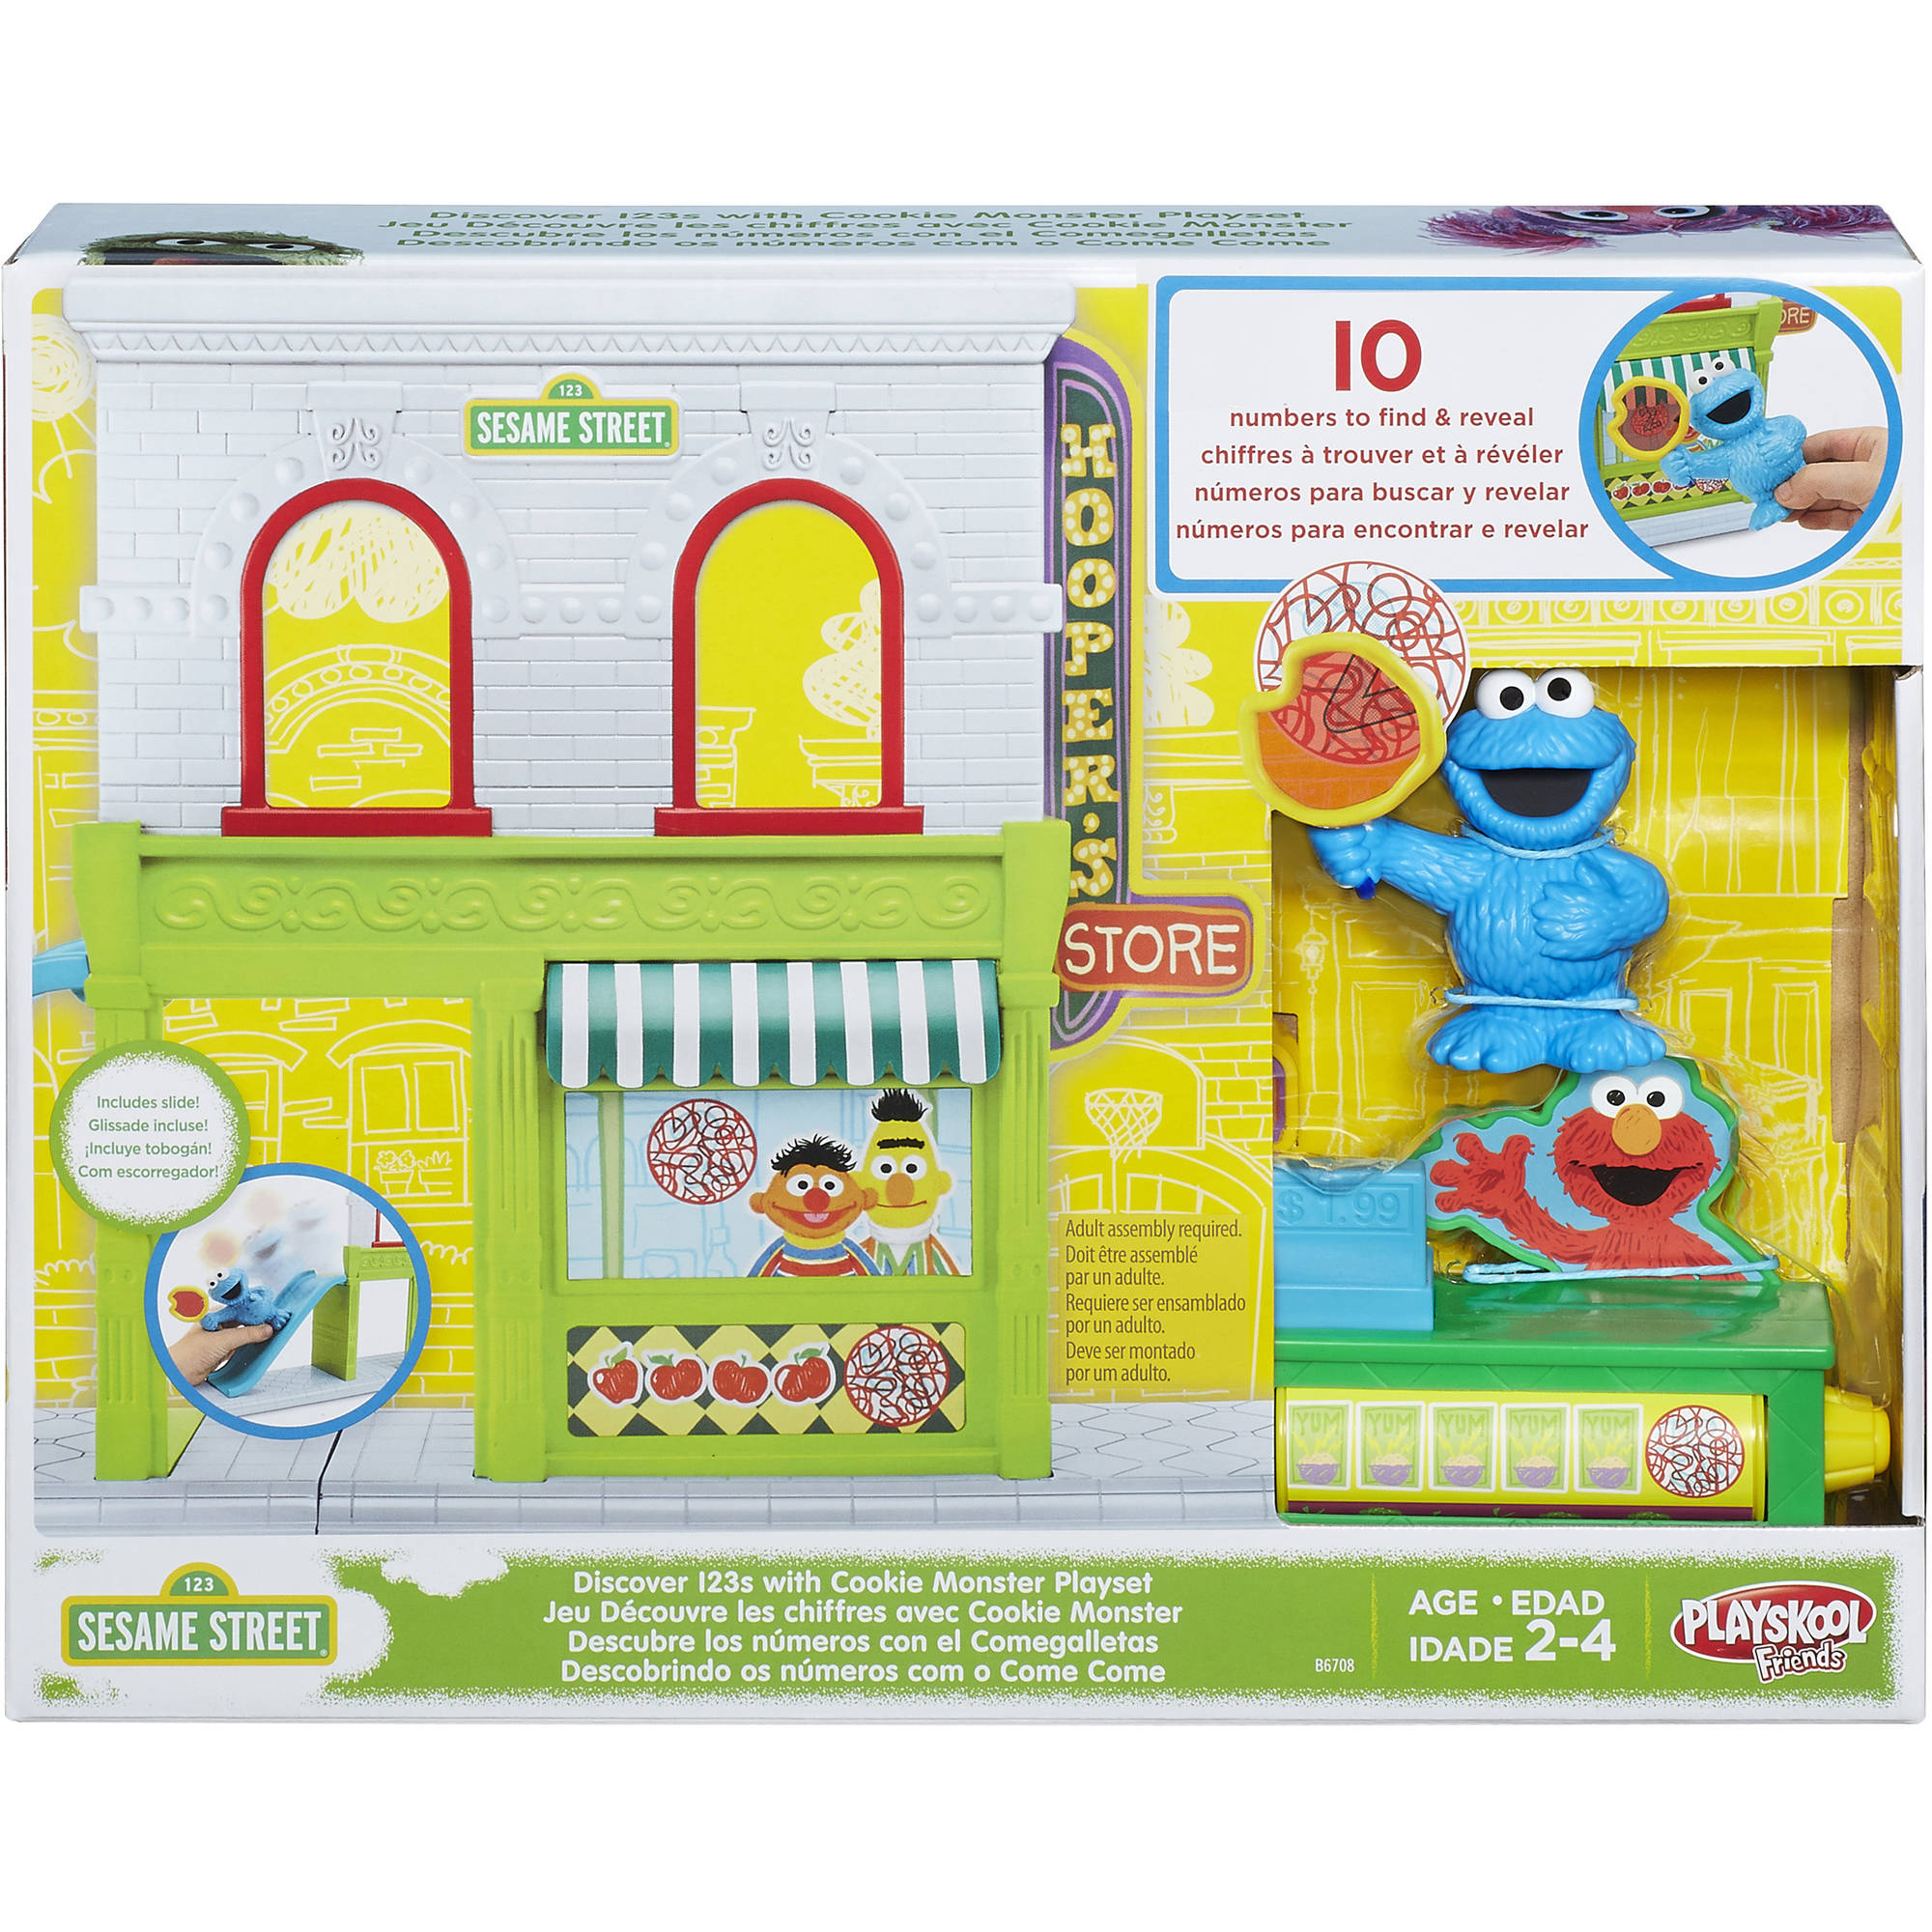 Discover 123s with Cookie Monster playset